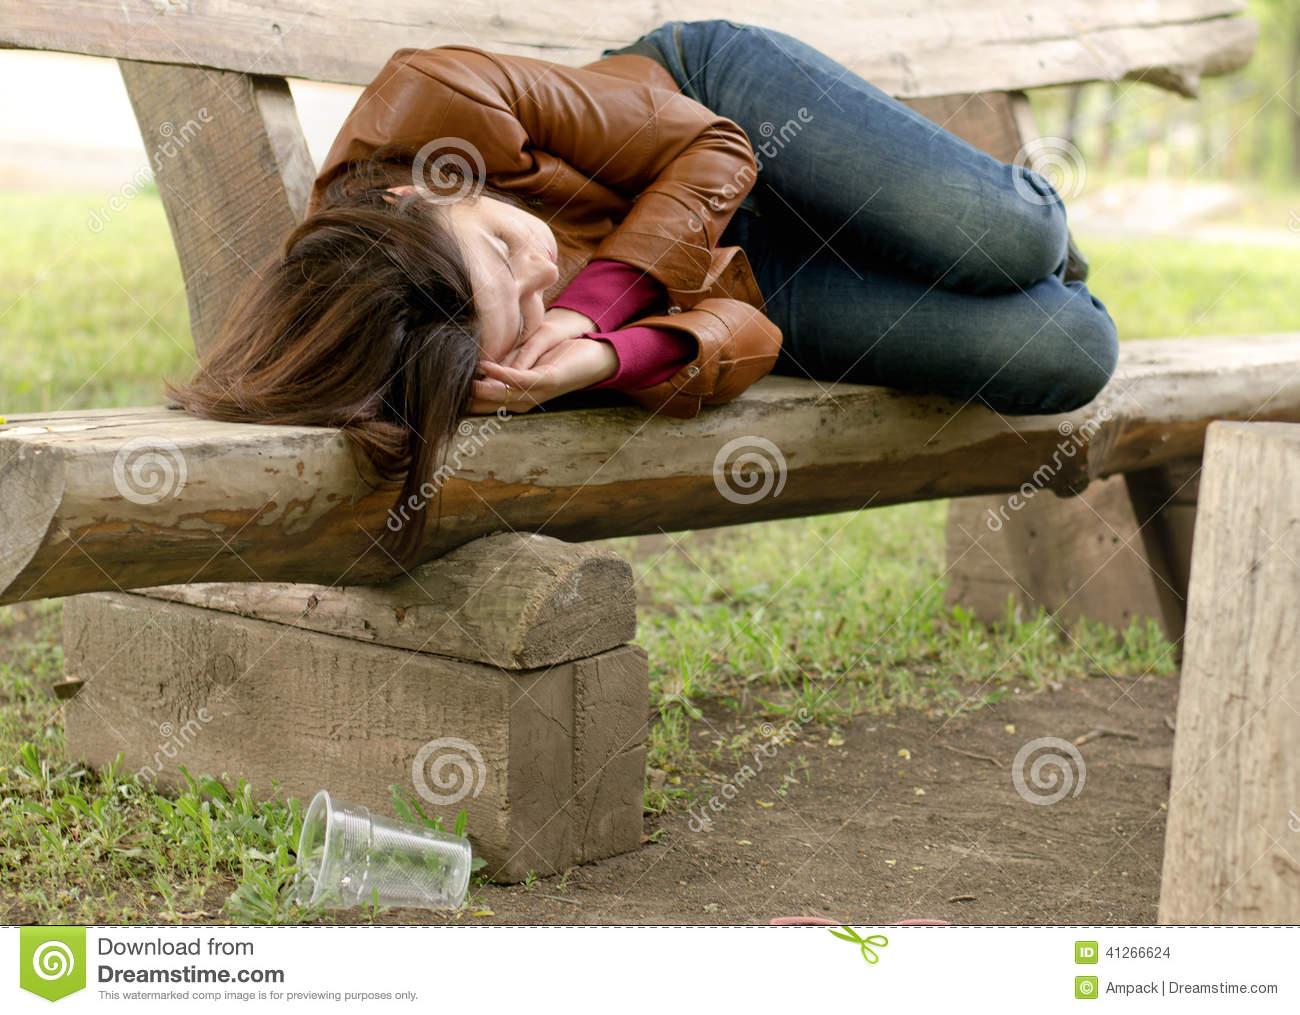 ... Woman Sleeping It Off On A Wooden Bench Stock Photo - Image: 41266624